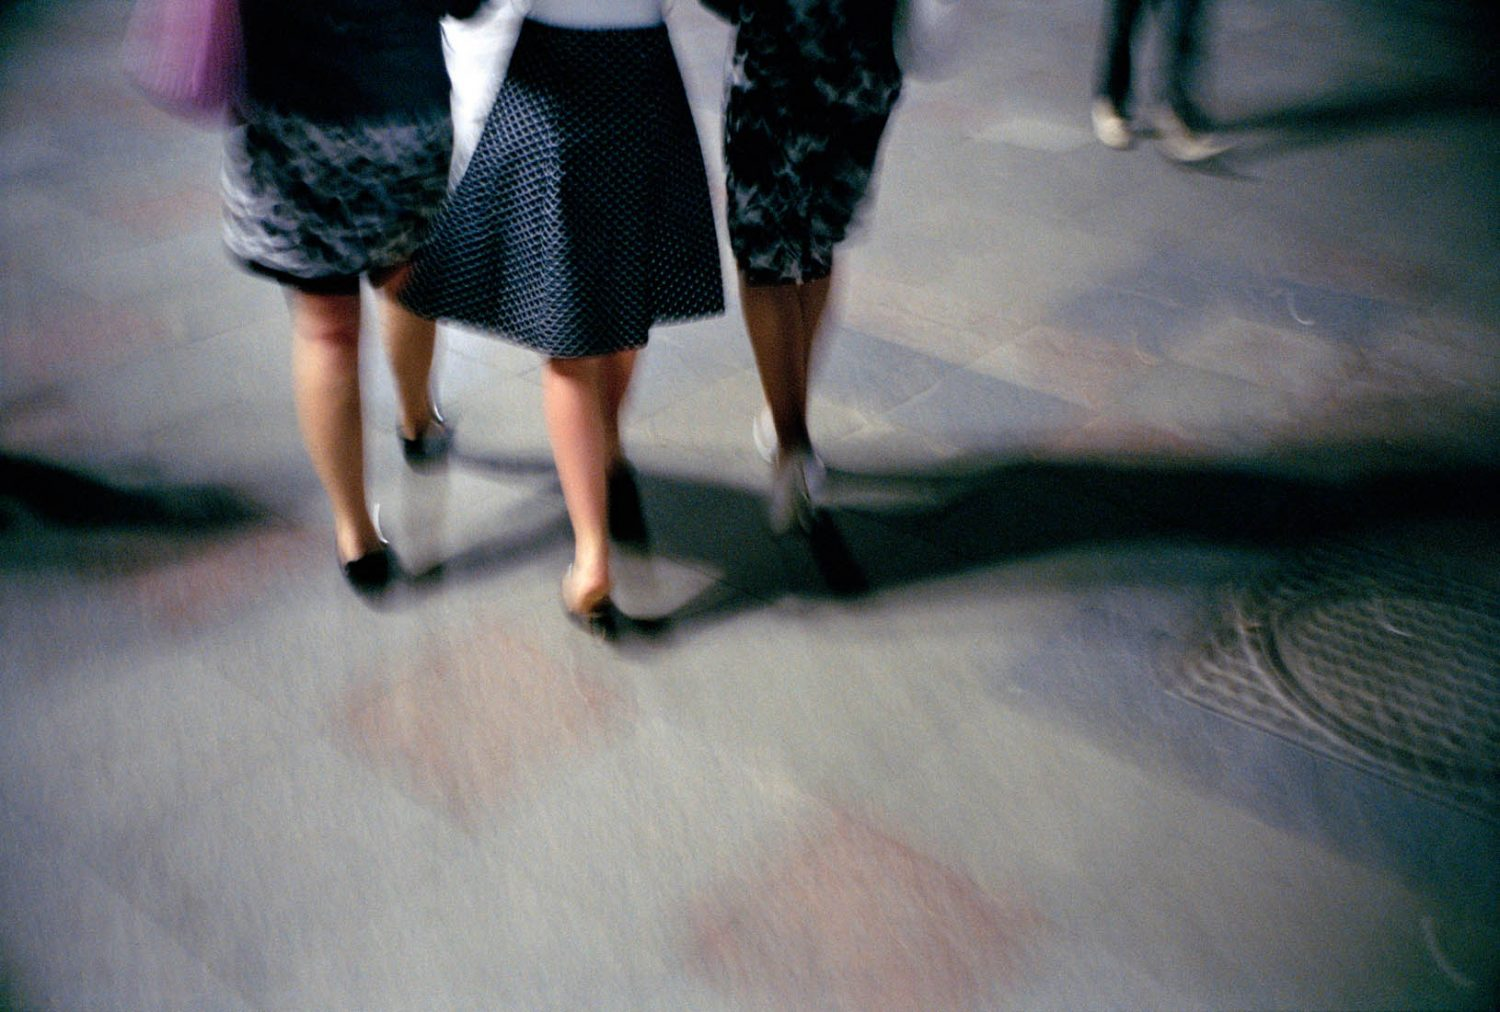 Oekraine, Krim, Jalta, 07-06-2008 Beautiful and elegant women legs on high heels going out in Yalta PHOTO AND COPYRIGHT ROGER CREMERS